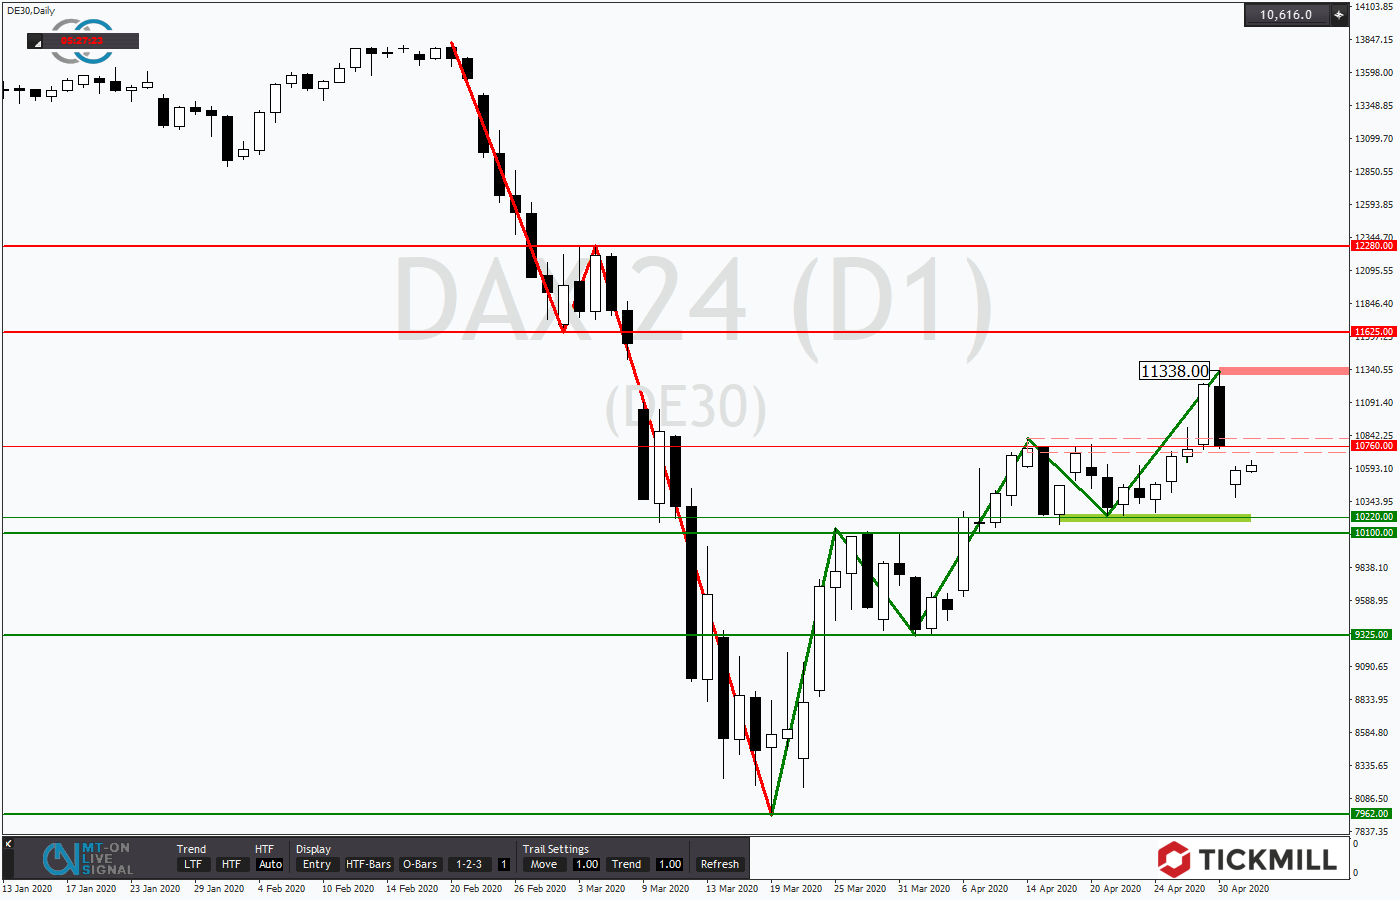 Tickmill-Analyse: DAX vor dem Support